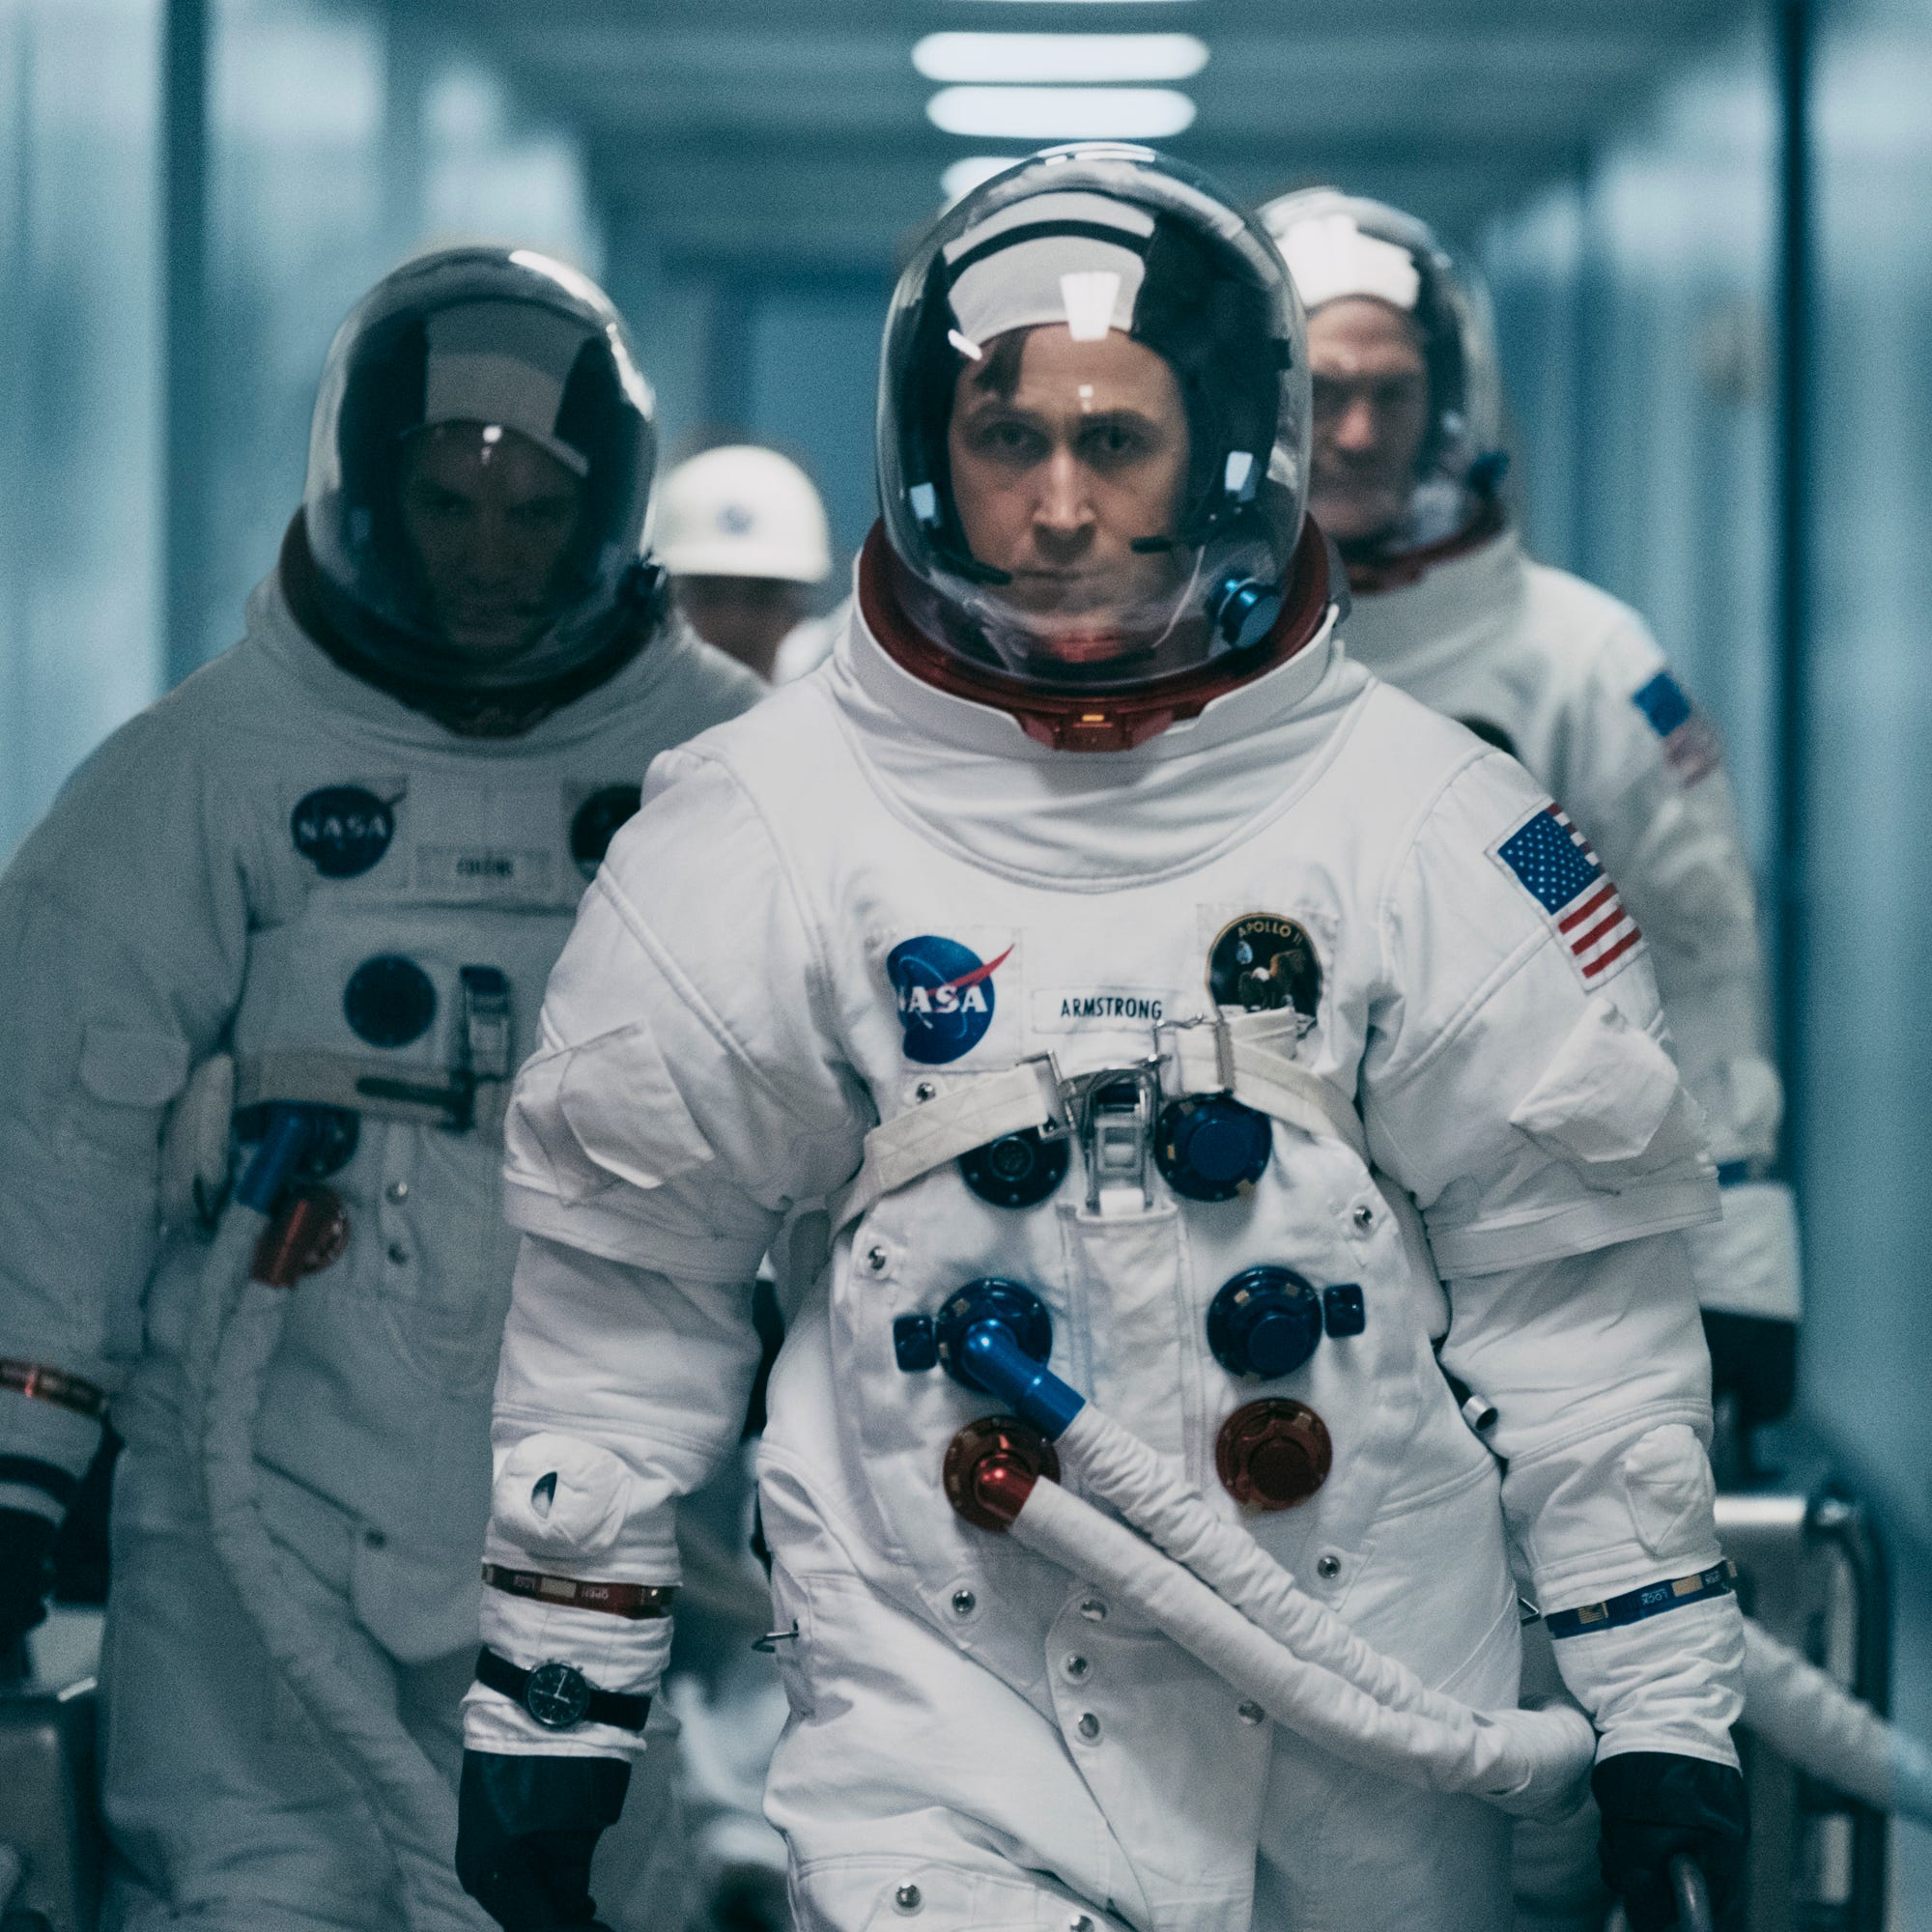 Walking on the moon: 7 takeaways from the Ryan Gosling movie 'First Man'